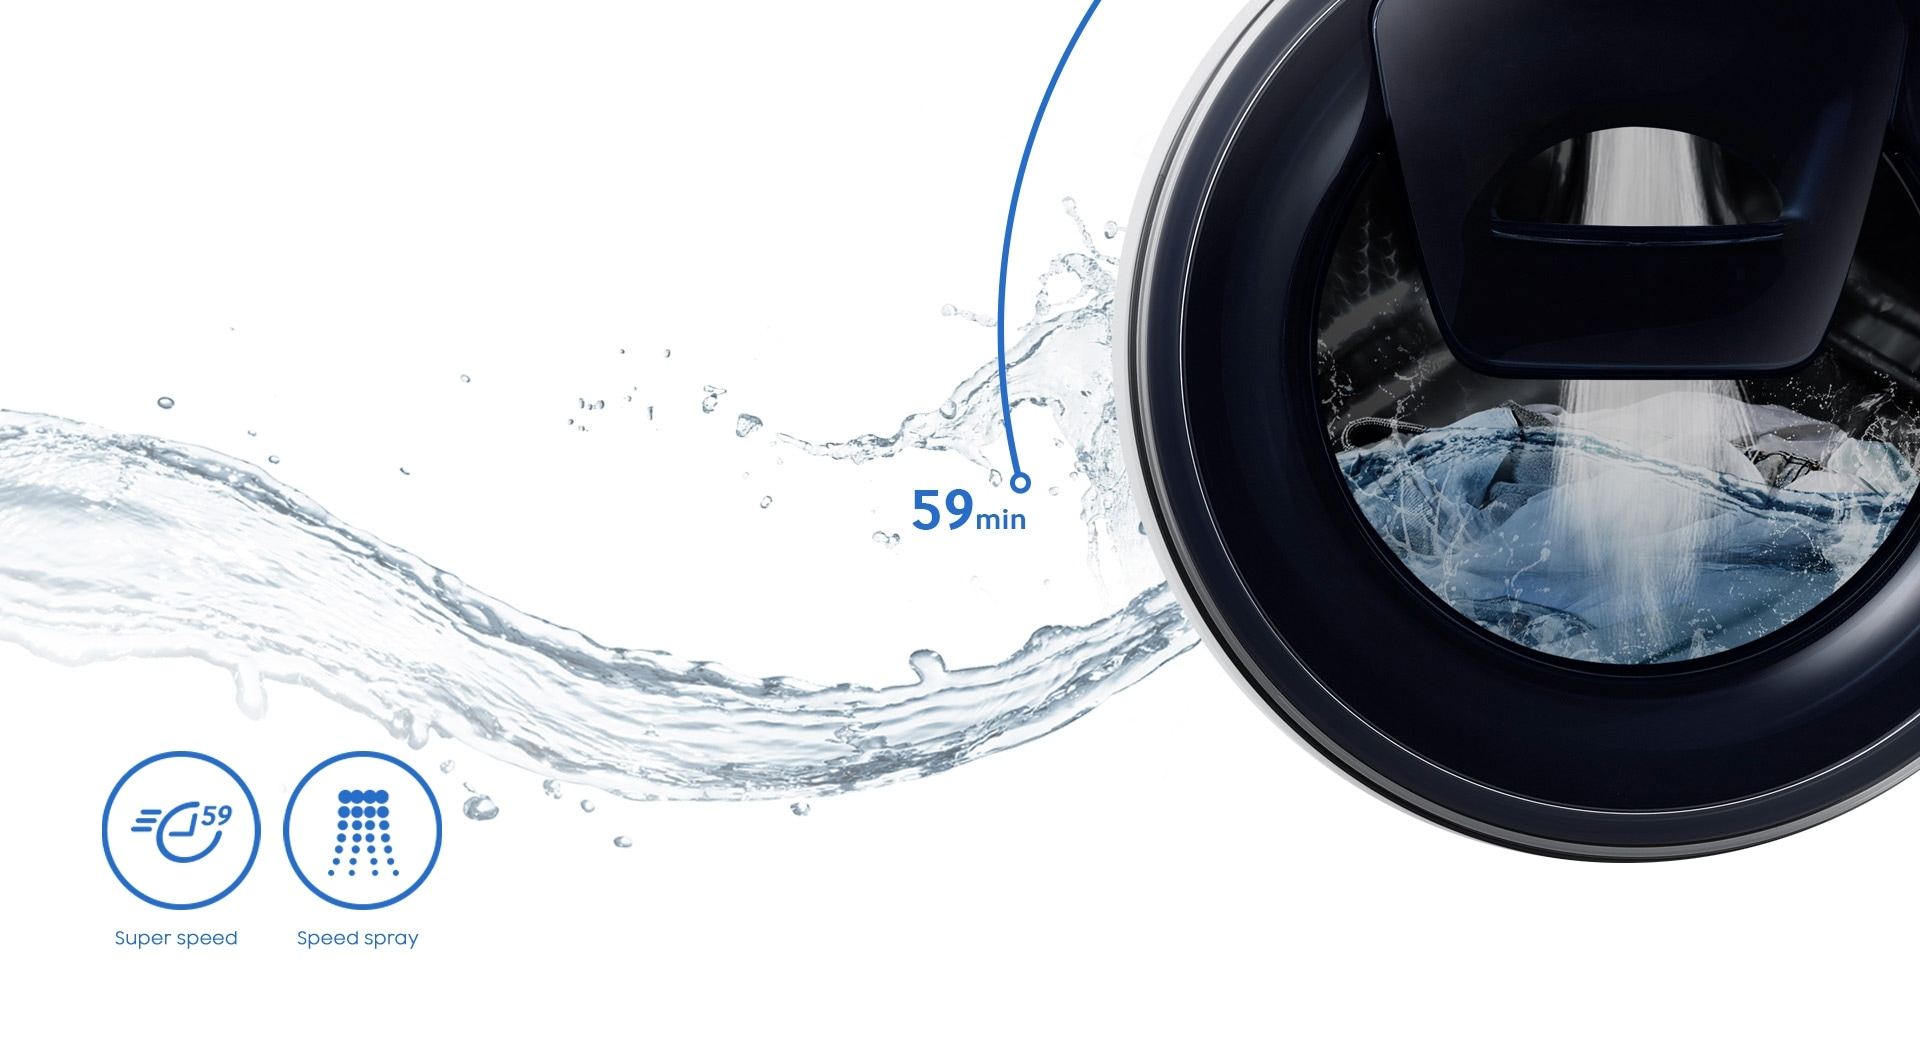 An image showing that the entire washing cycle – including washing, rinsing and drying – takes a total of 59 minutes.